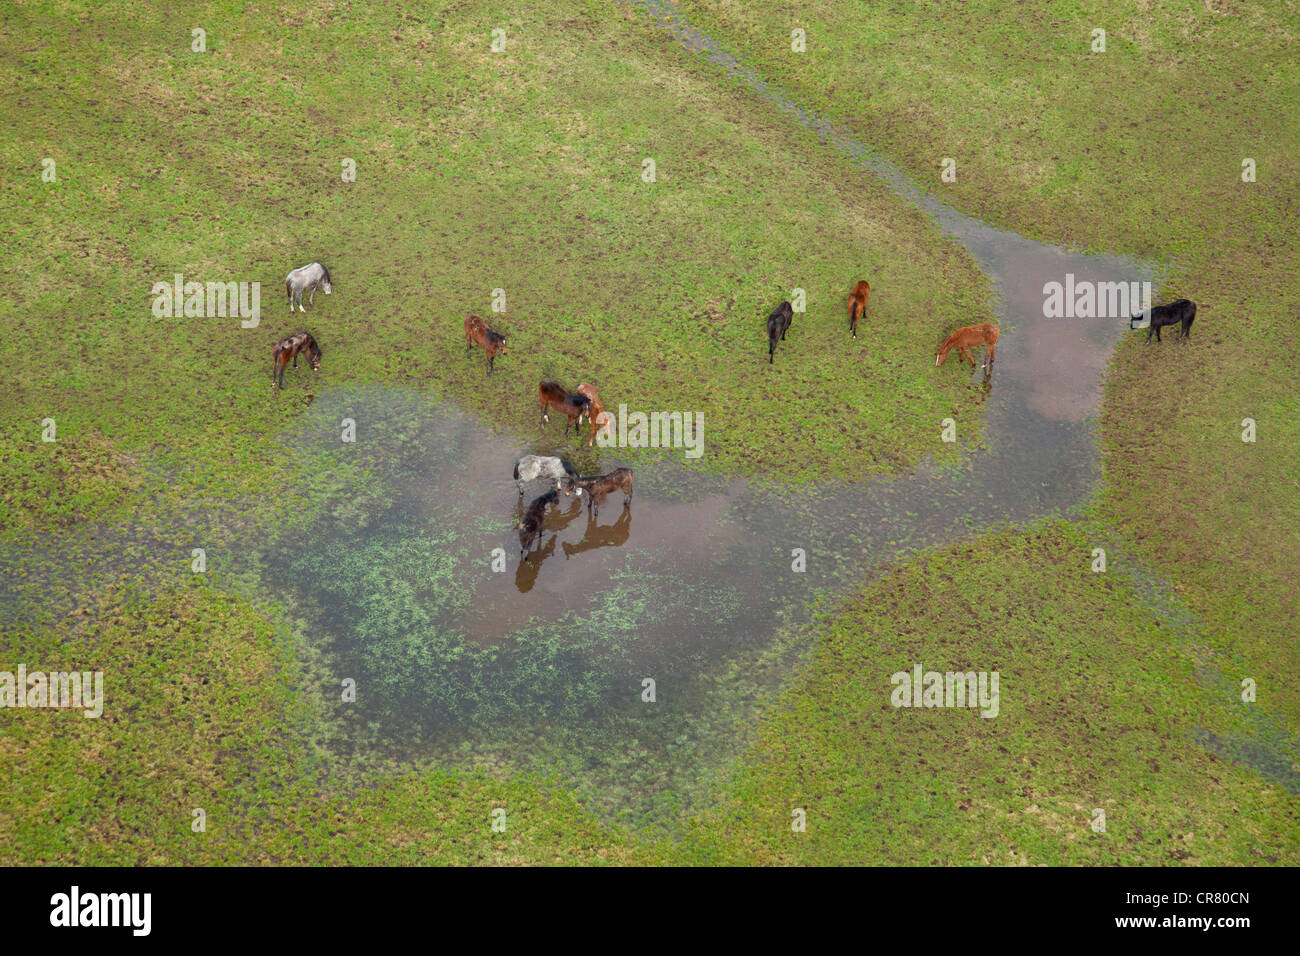 France, Calvados, Victot Pontfol, horses in pastures flooded after Xynthia storm (aerial view) - Stock Image